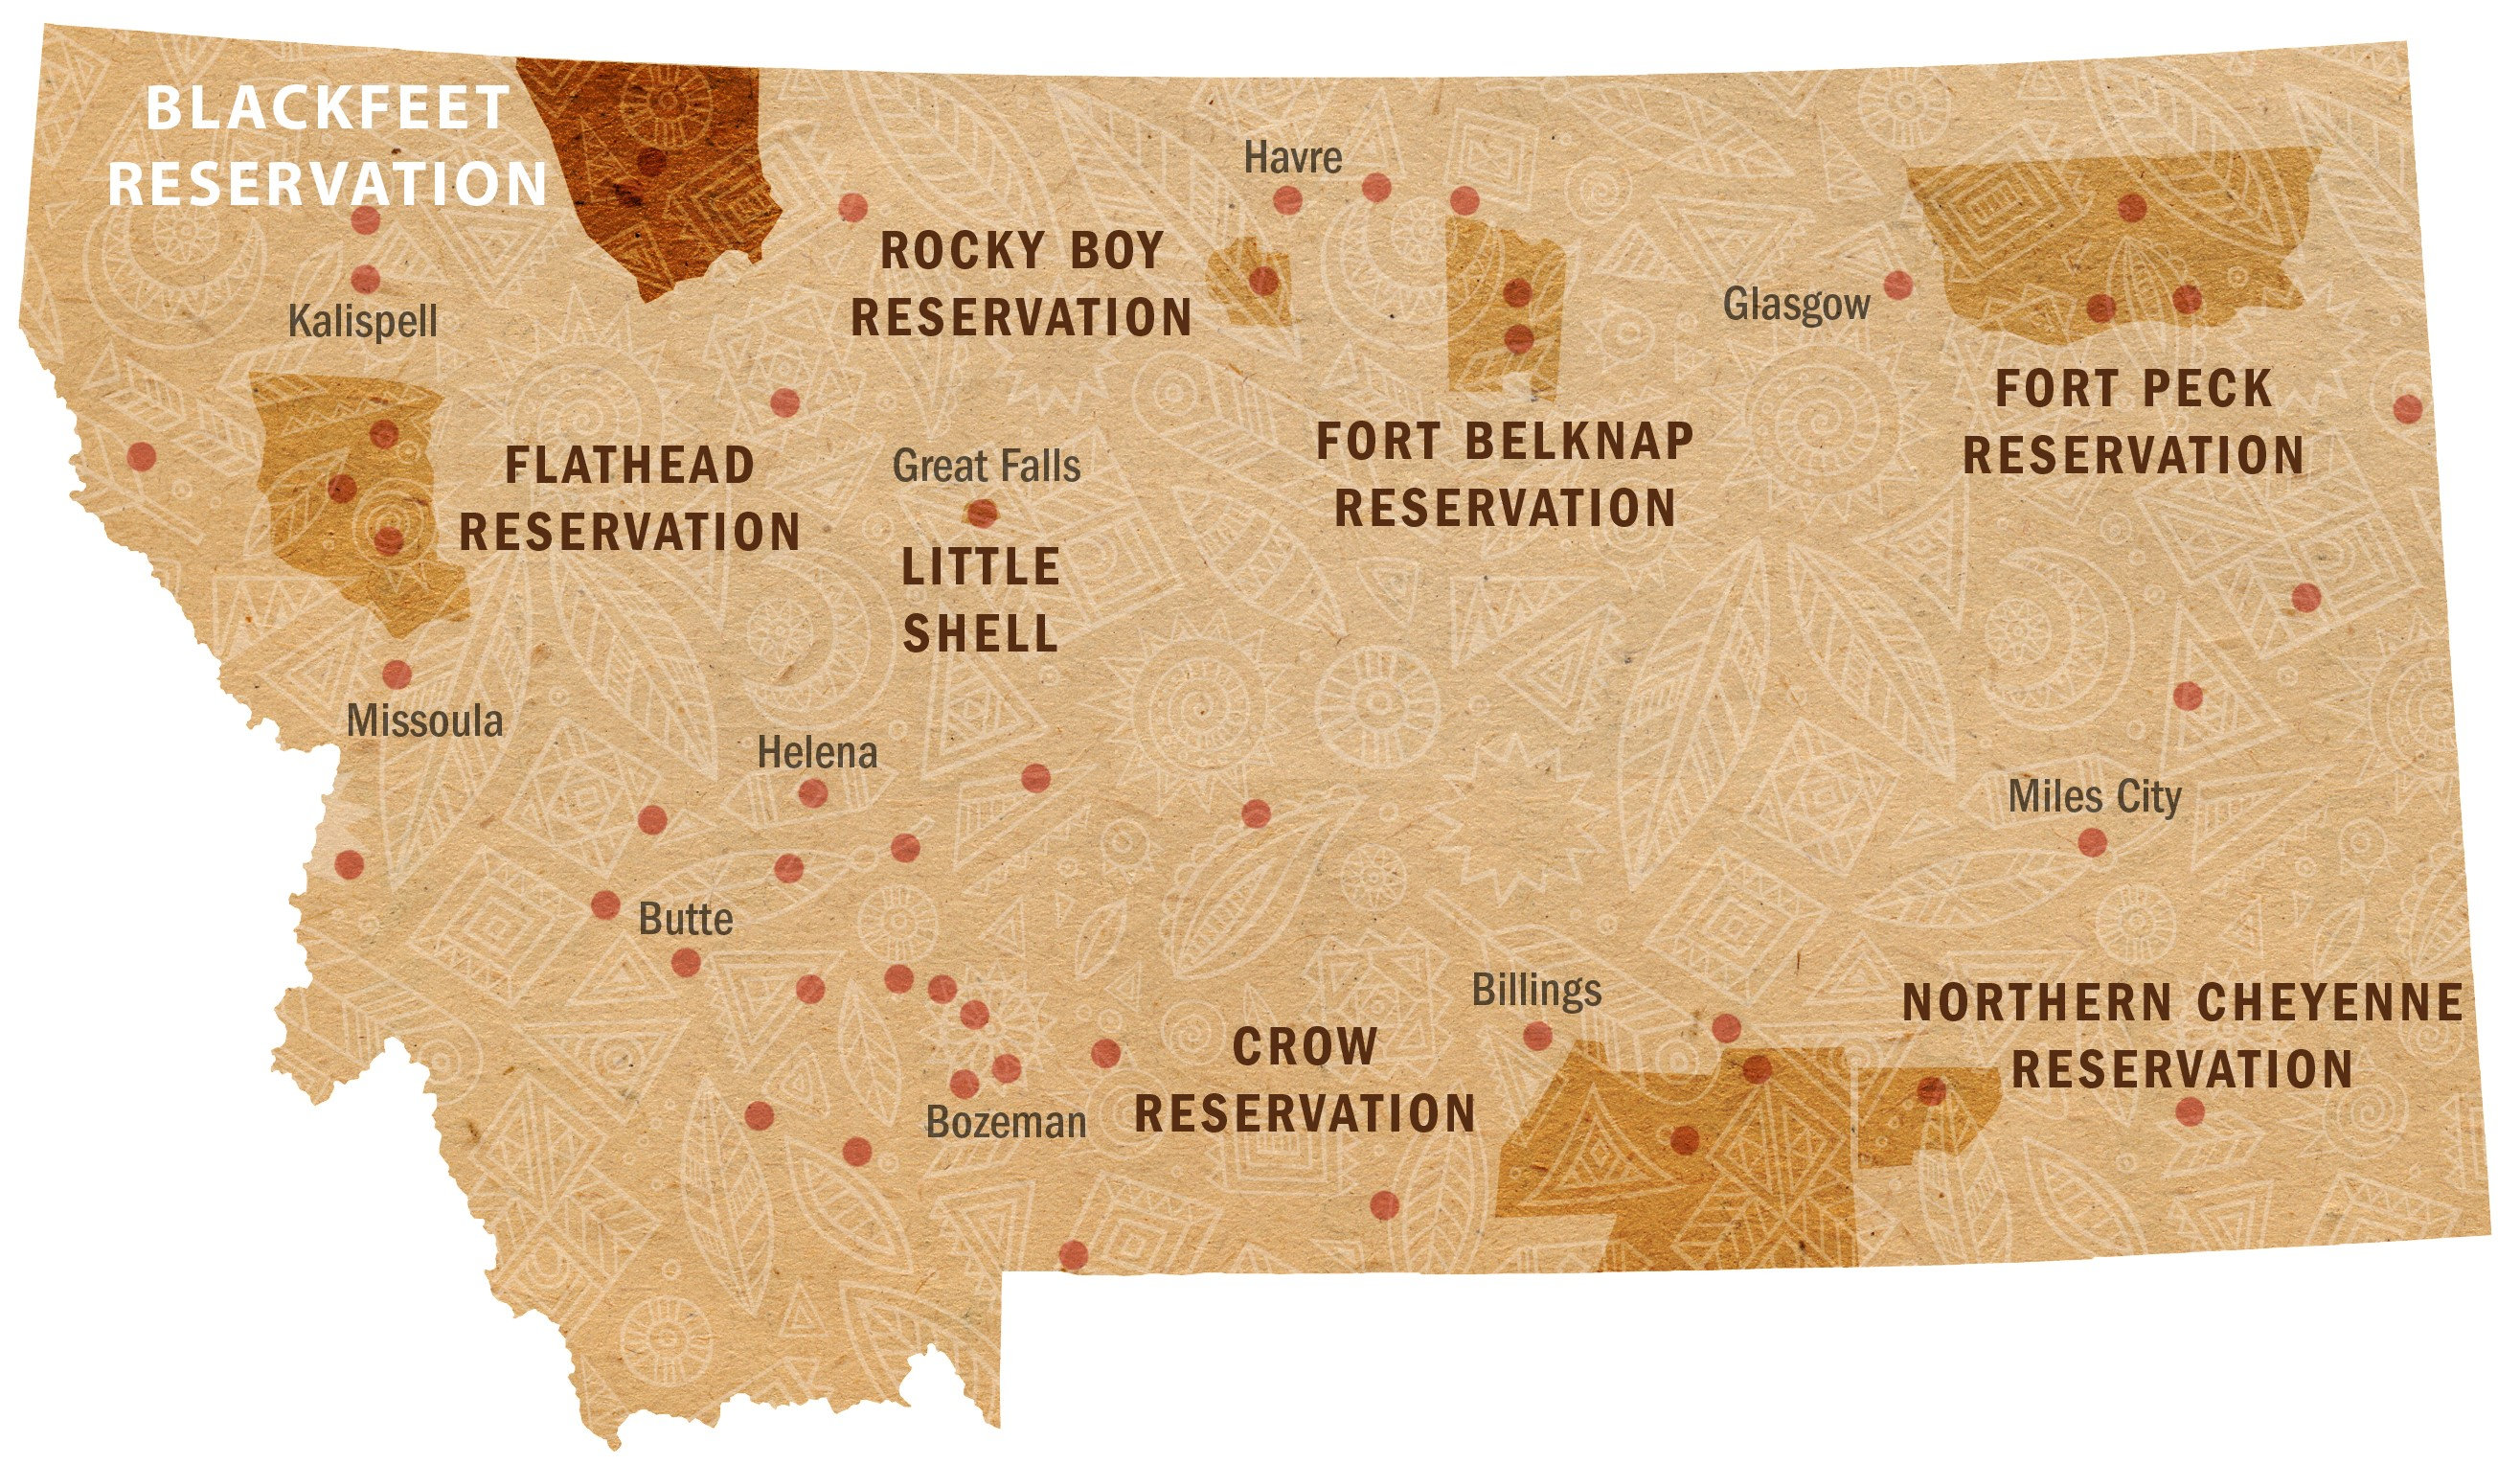 Fort Peck Reservation Map